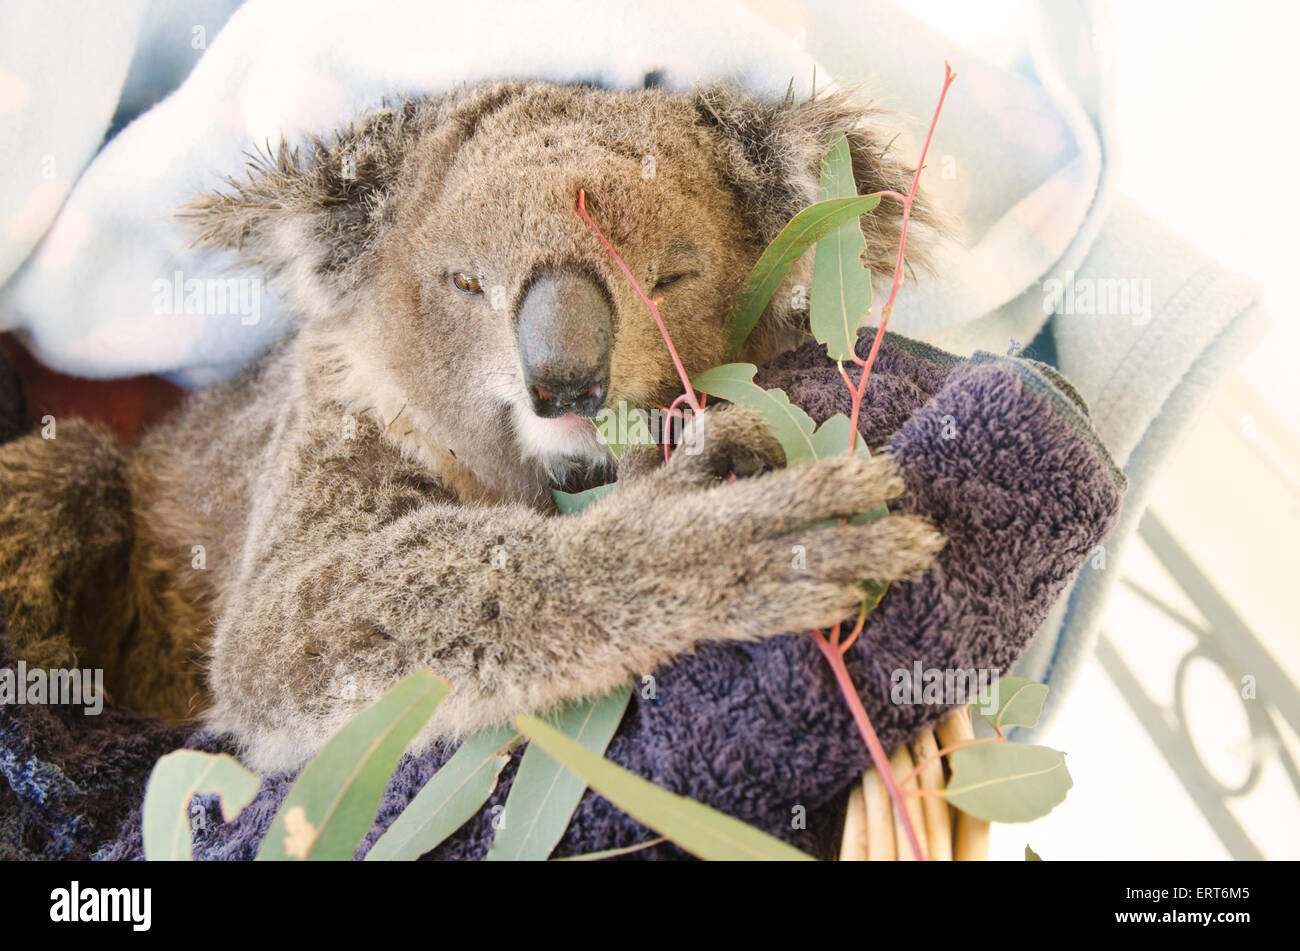 A young rescued female koala eating gum leaves. Phasocolarctus cinerus - Stock Image